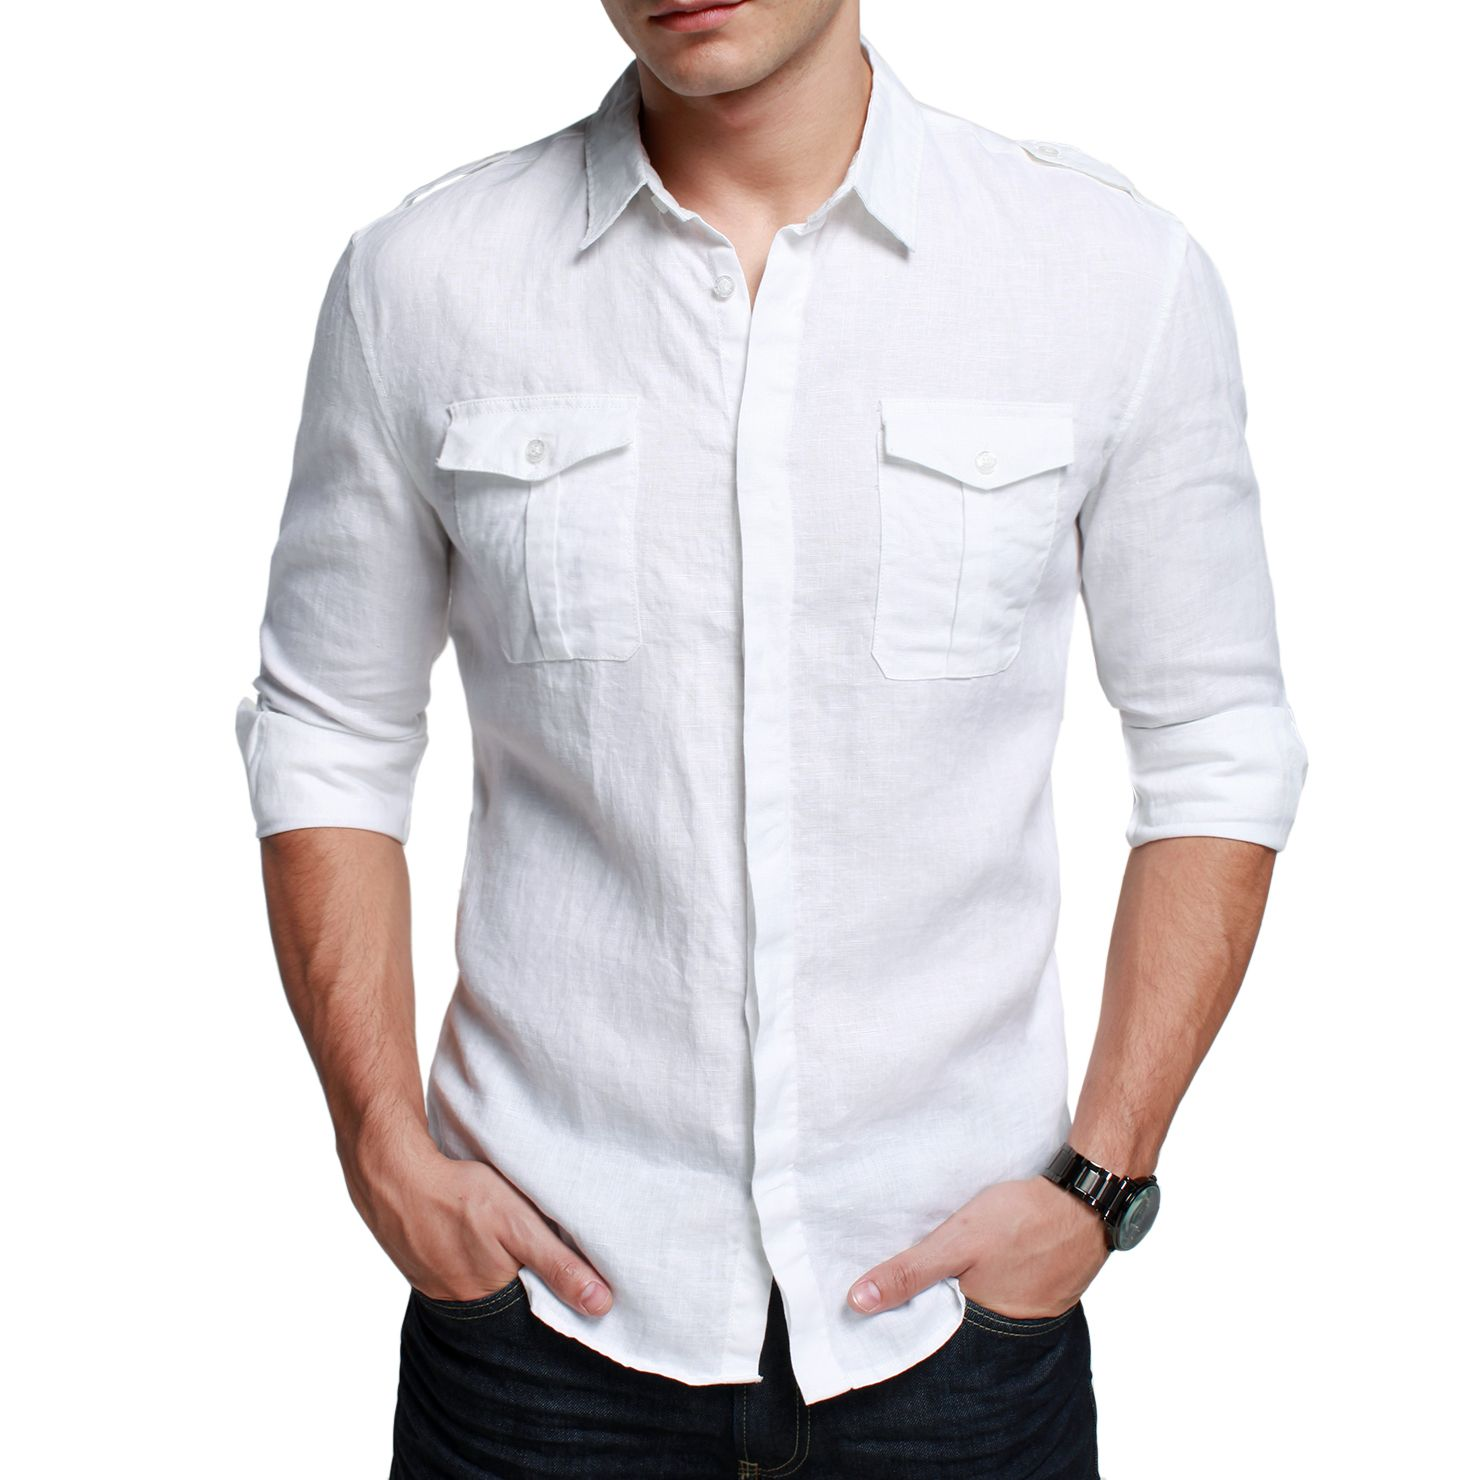 White Shirt For Mens Artee Shirt